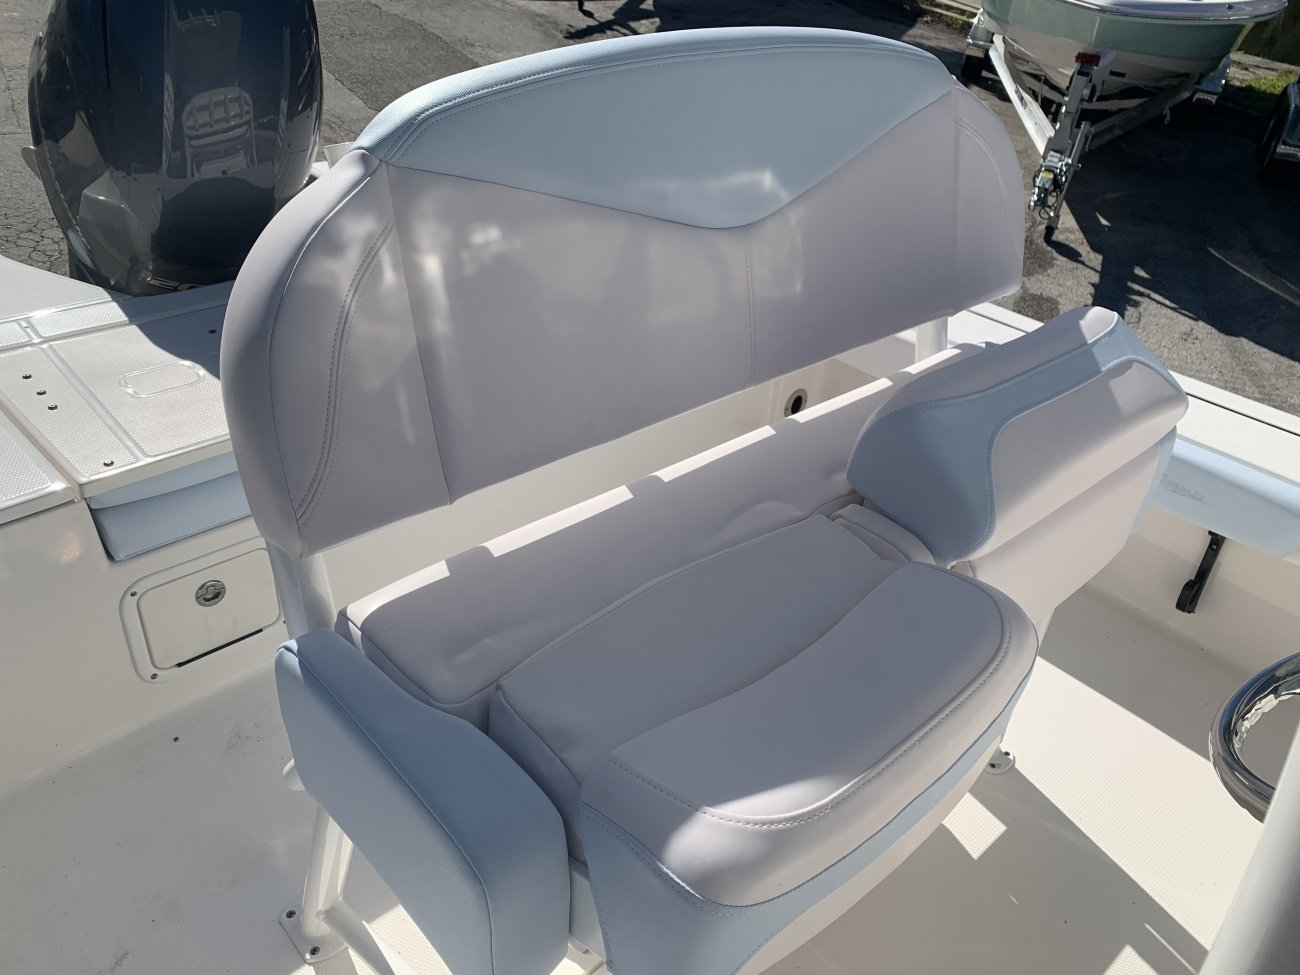 A 226 Cayman Bay Boat is a Power and could be classed as a Bay Boat, Center Console, Fish and Ski, Flats Boat, Freshwater Fishing, High Performance, Saltwater Fishing, Runabout,  or, just an overall Great Boat!